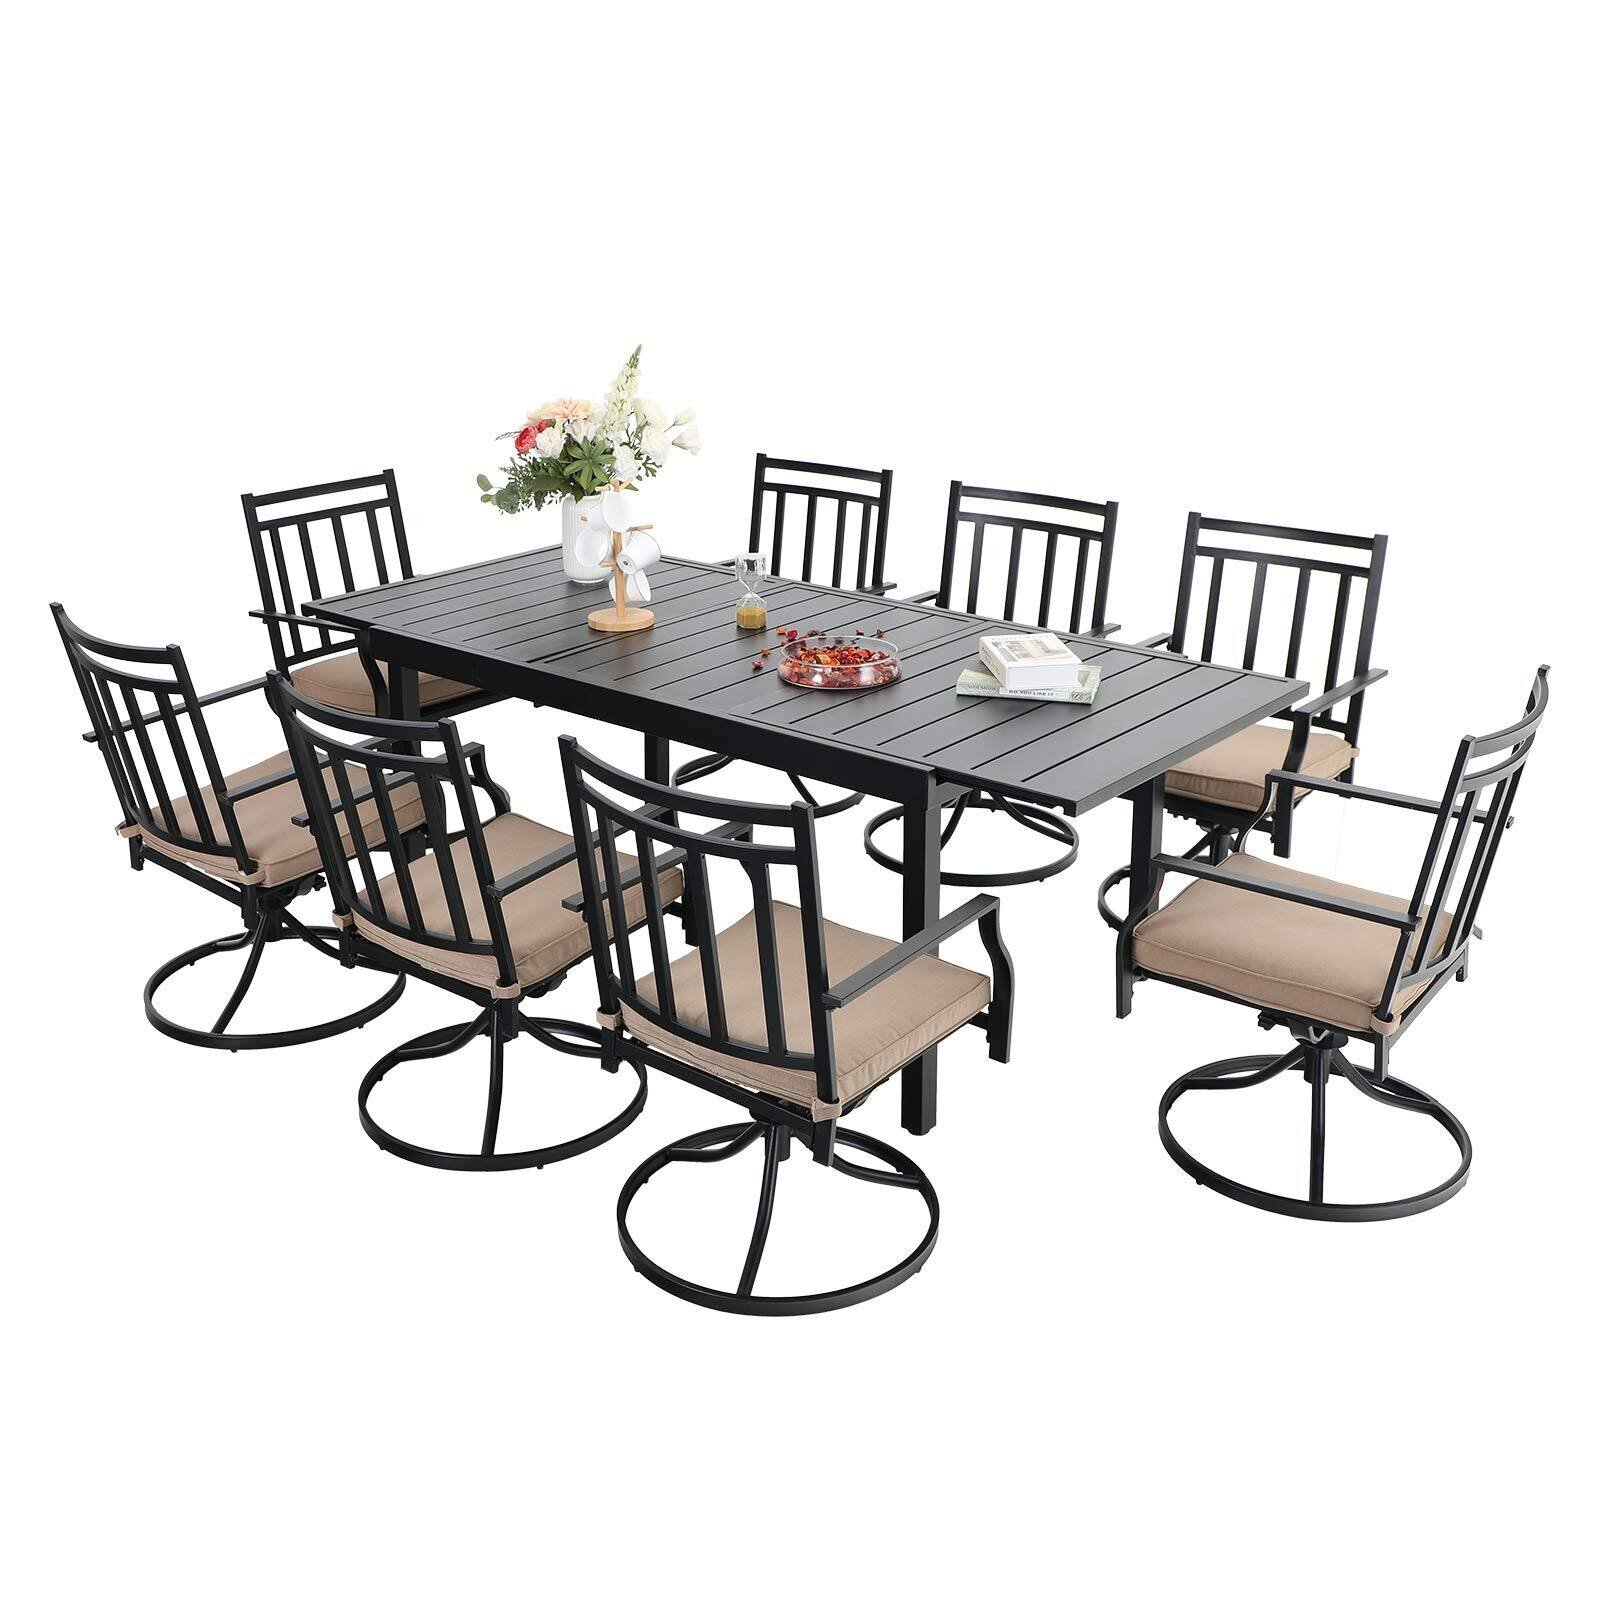 Eight Person Patio Dining Sets You Ll Love In 2021 Wayfair